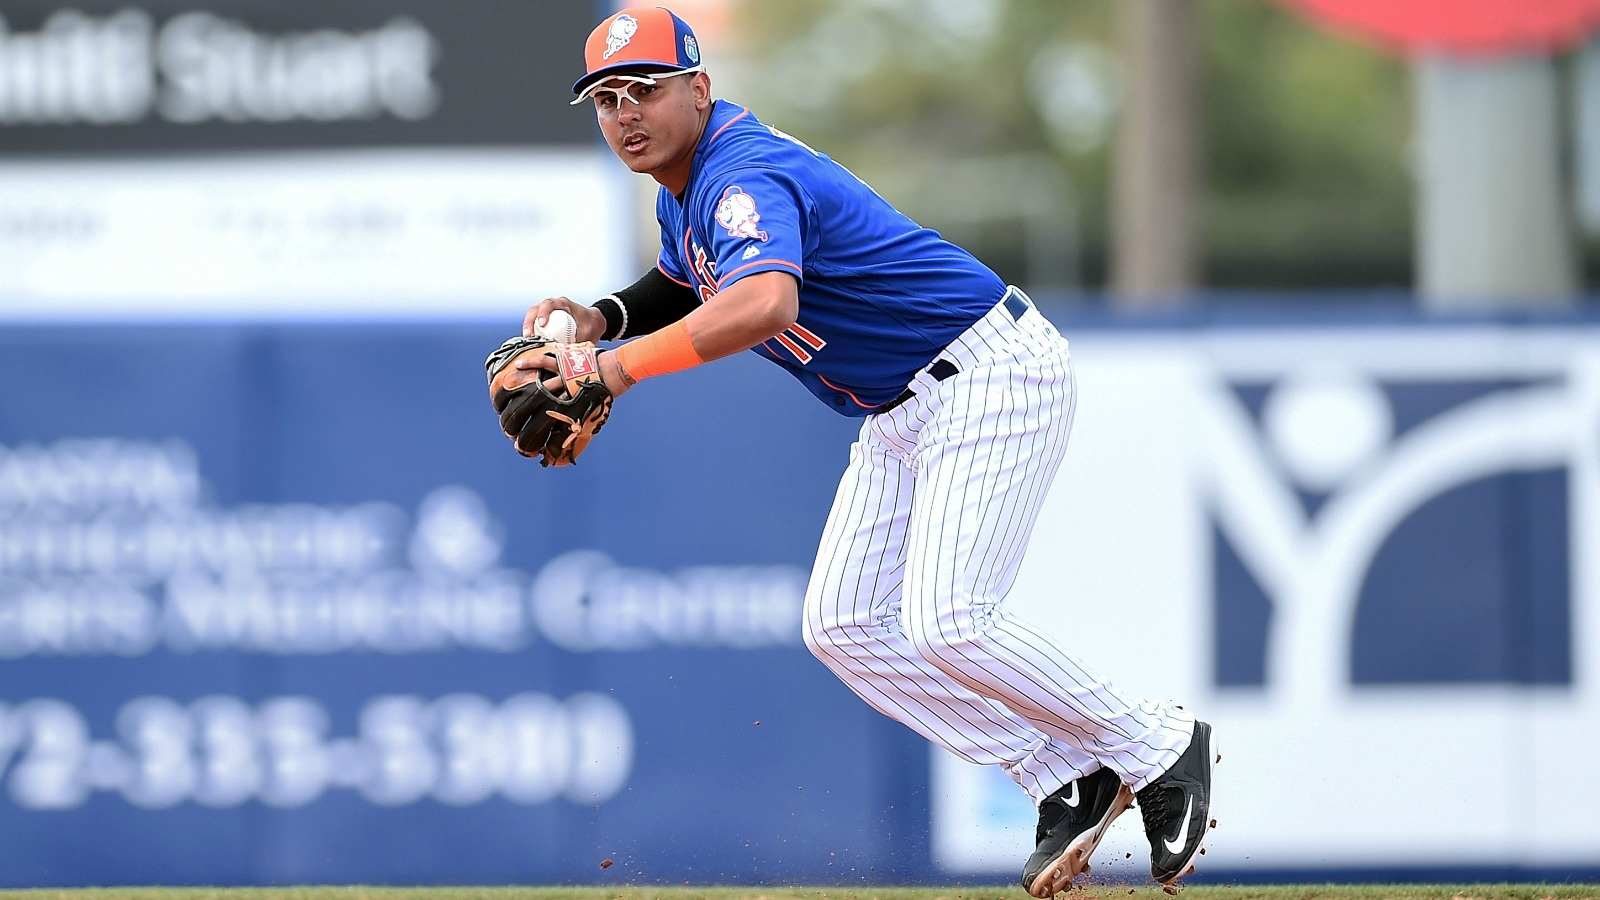 Report: Mets place NLCS slide victim Ruben Tejada on waivers